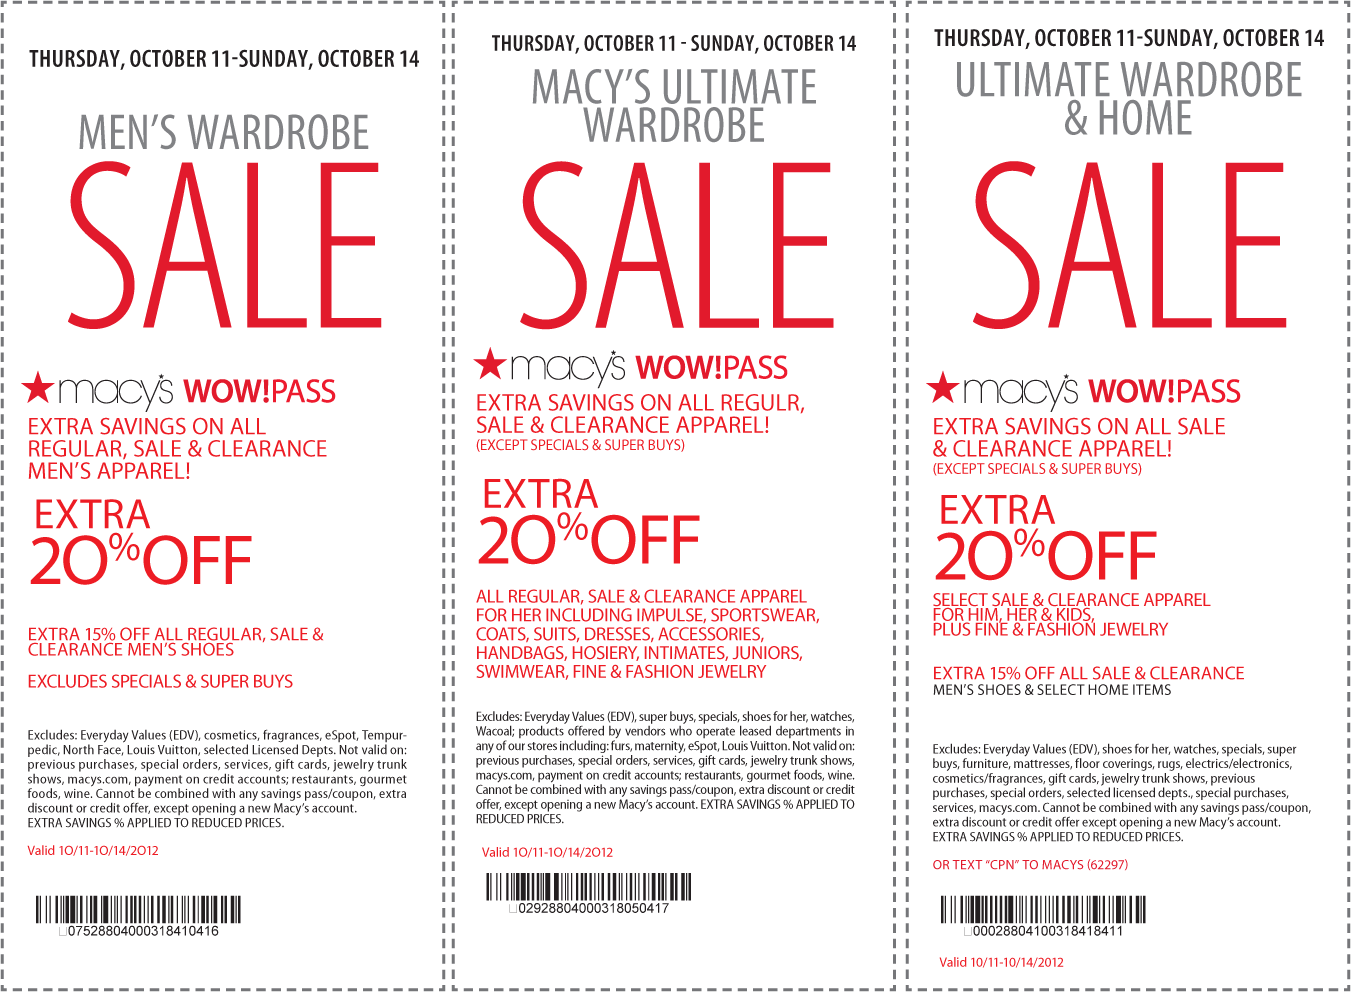 Extra 20 off apparel and more at Macys includes